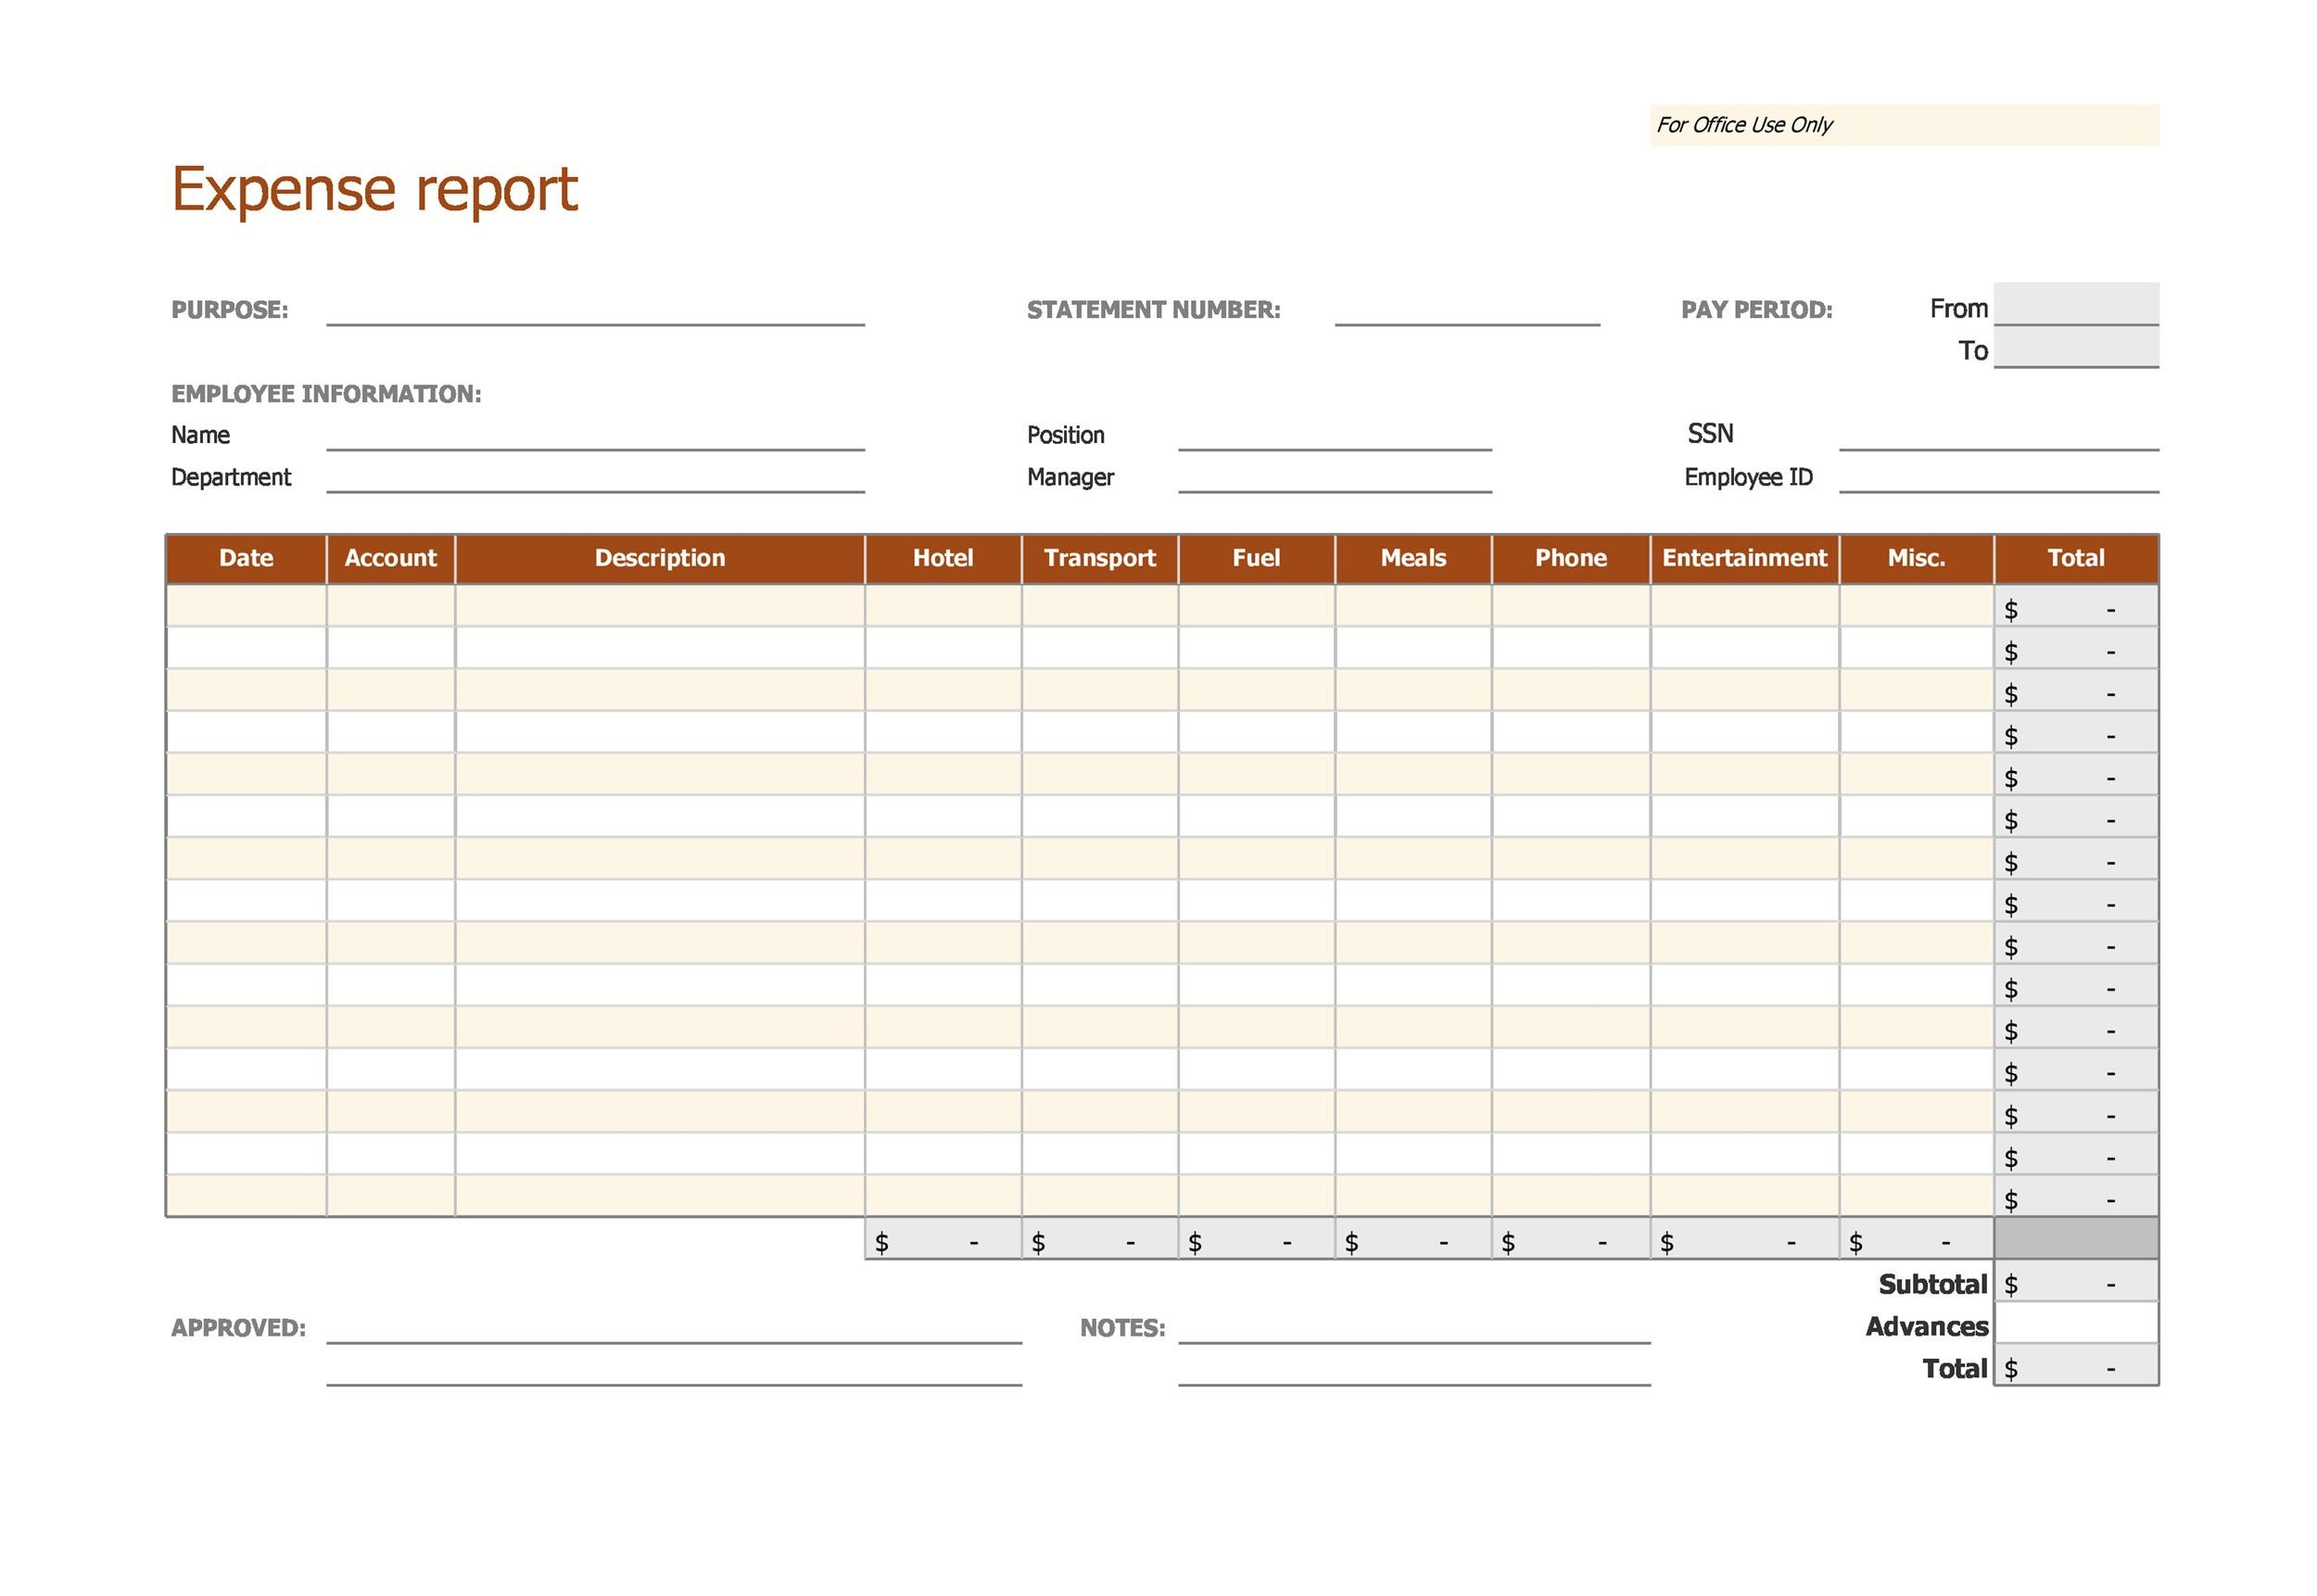 40+ Expense Report Templates to Help you Save Money - Template Lab - sample travel expense report